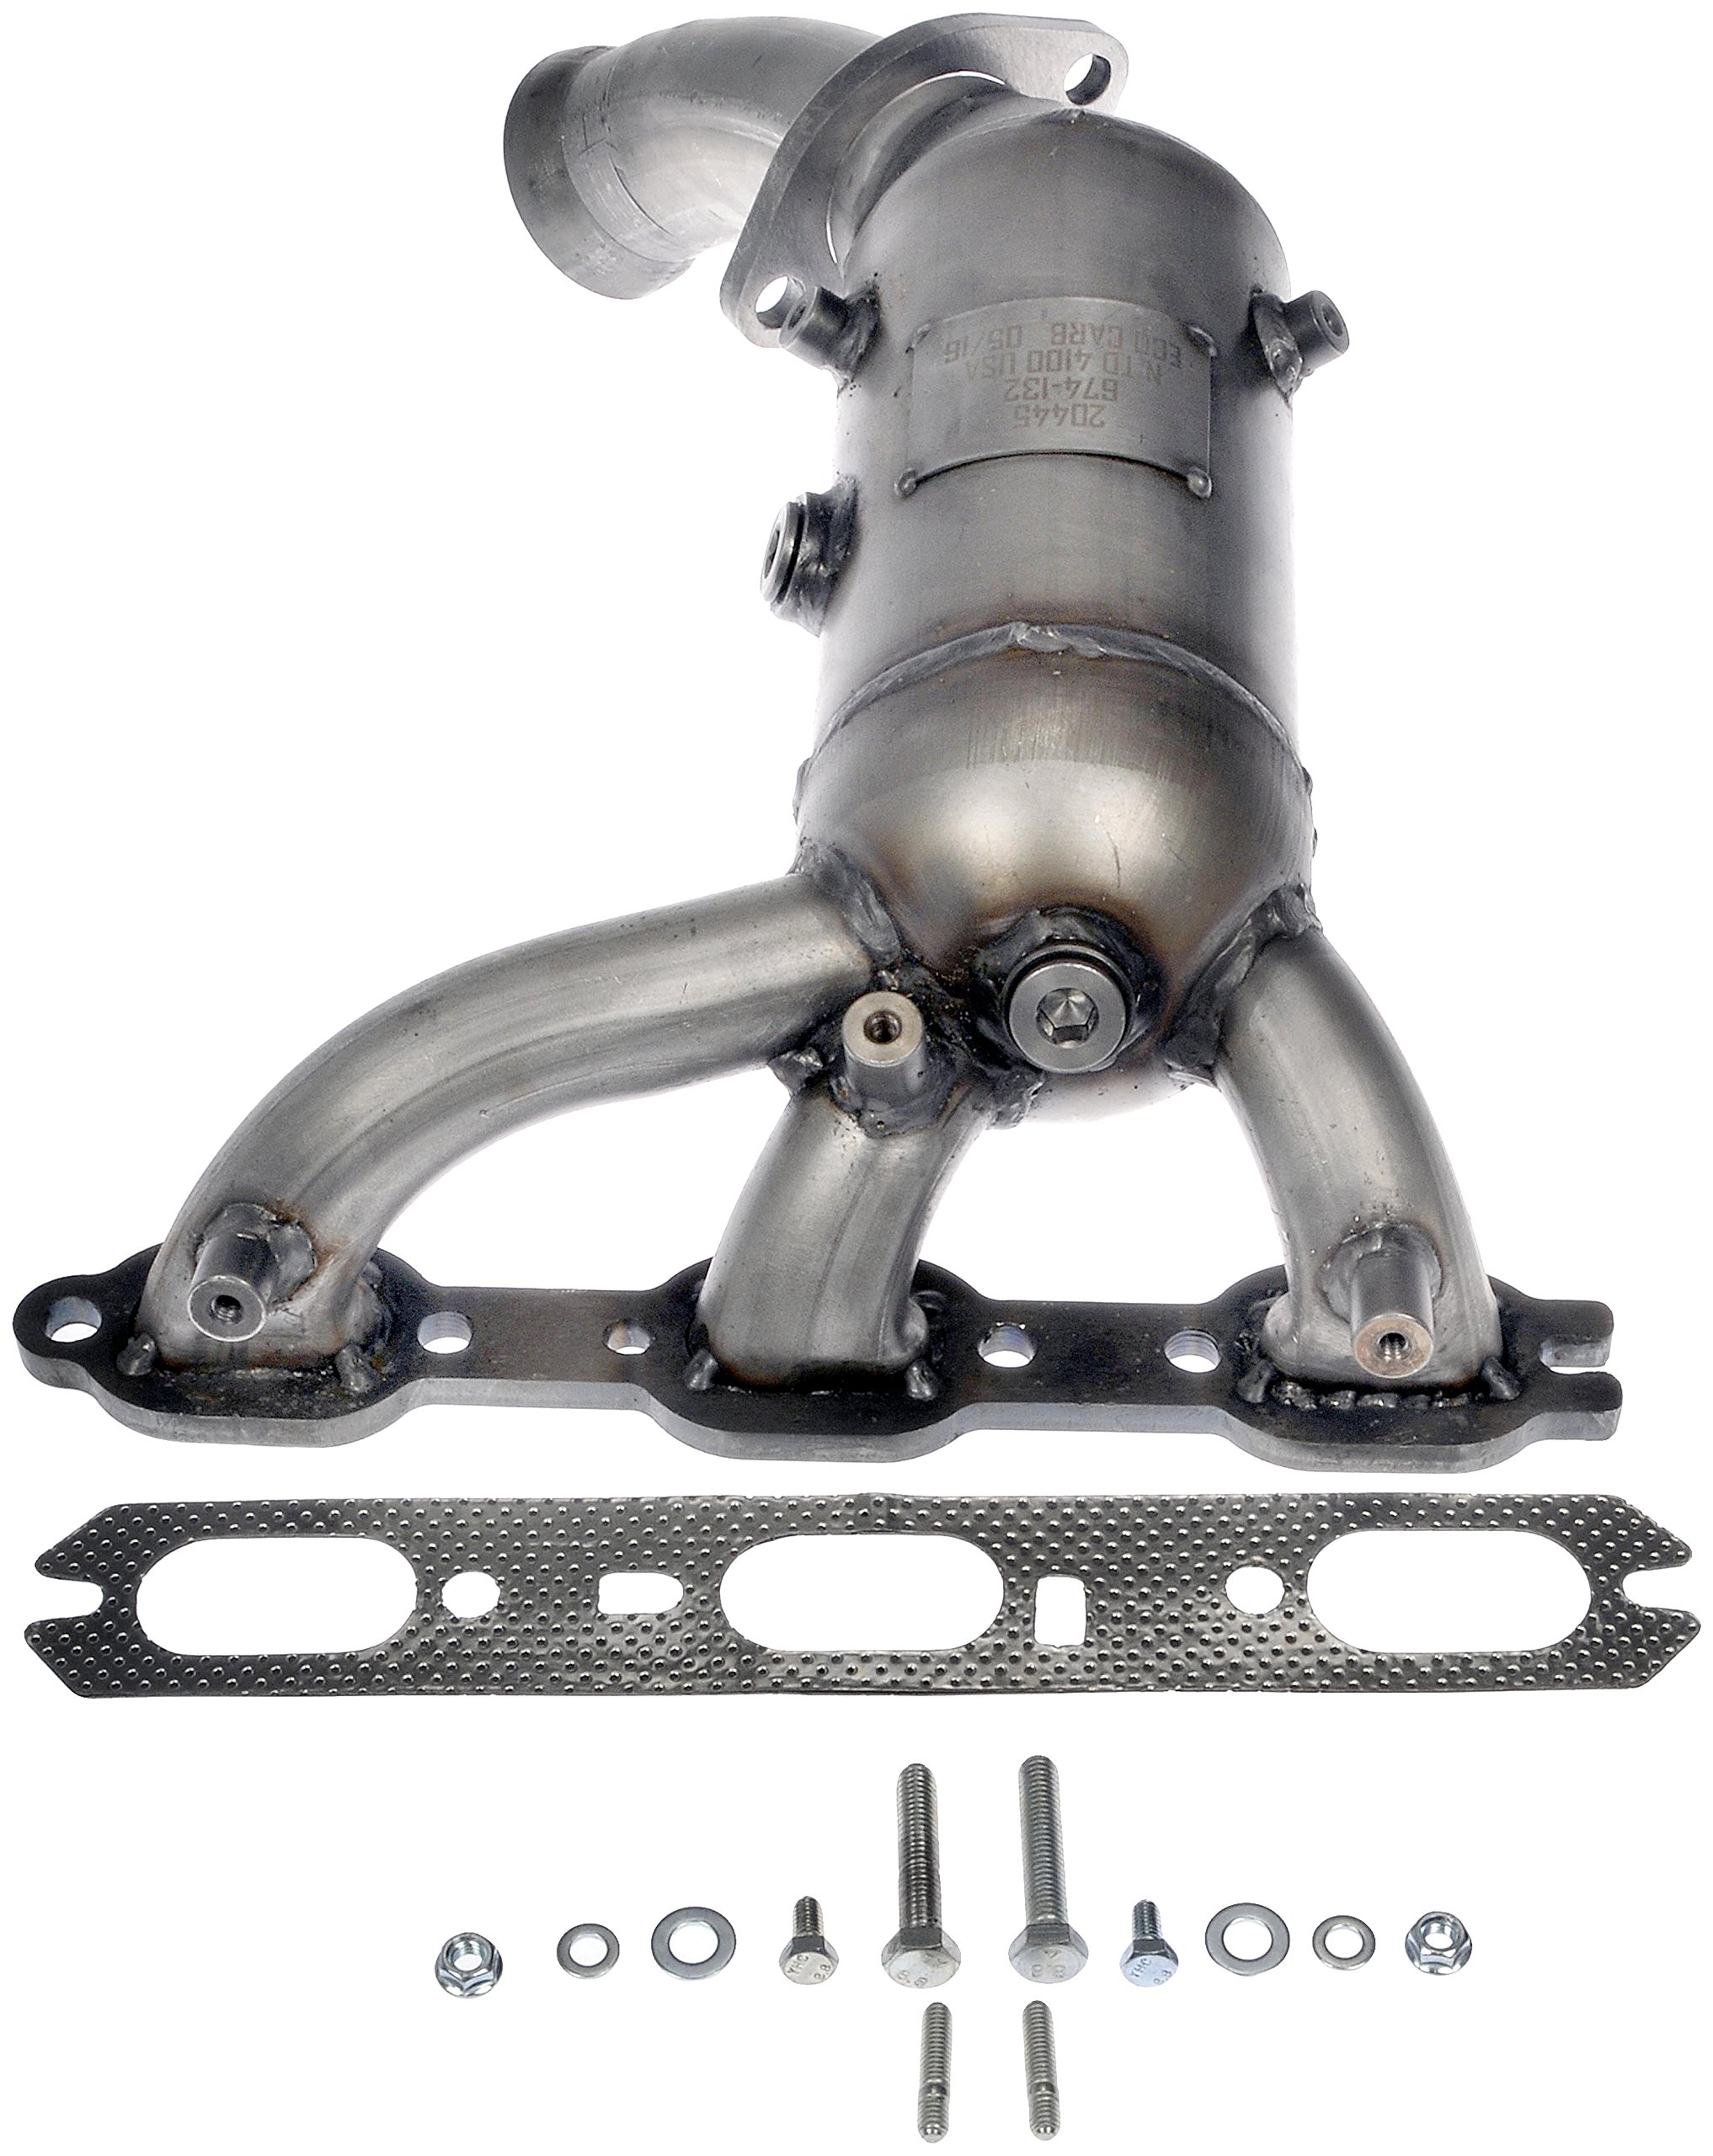 Dorman 674-132 Front Catalytic Converter with Integrated Exhaust Manifold for Select Chrysler / Dodge / Volkswagen Models (Non CARB Compliant)